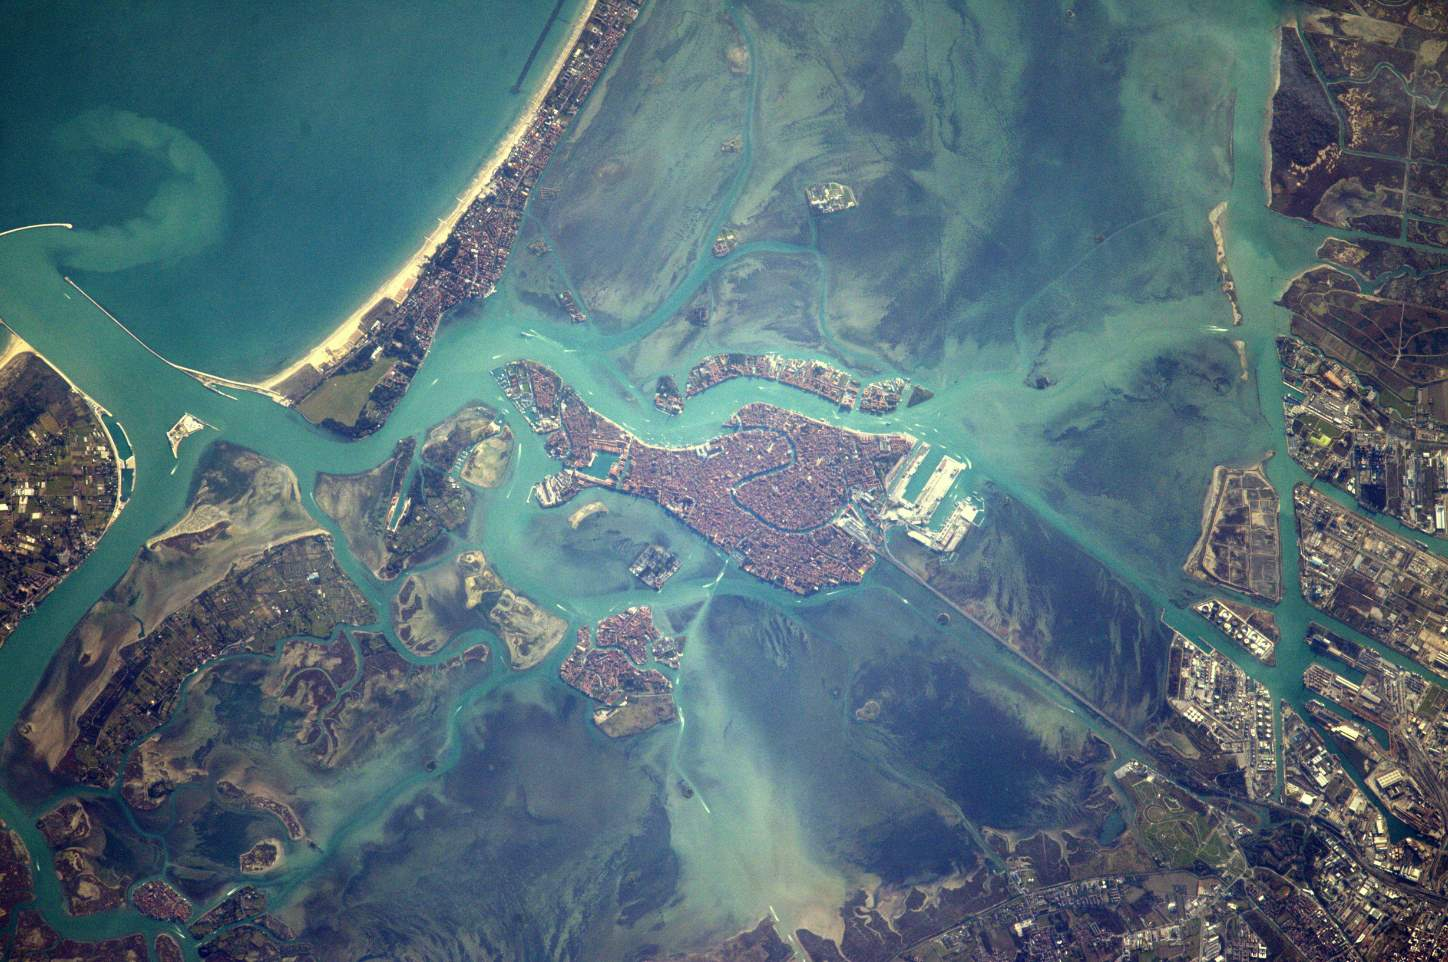 Top 10 Most Beautiful Earth Photos Taken From the International Space Station in 2017: Space Station Flight Over Venice. February 14, 2017